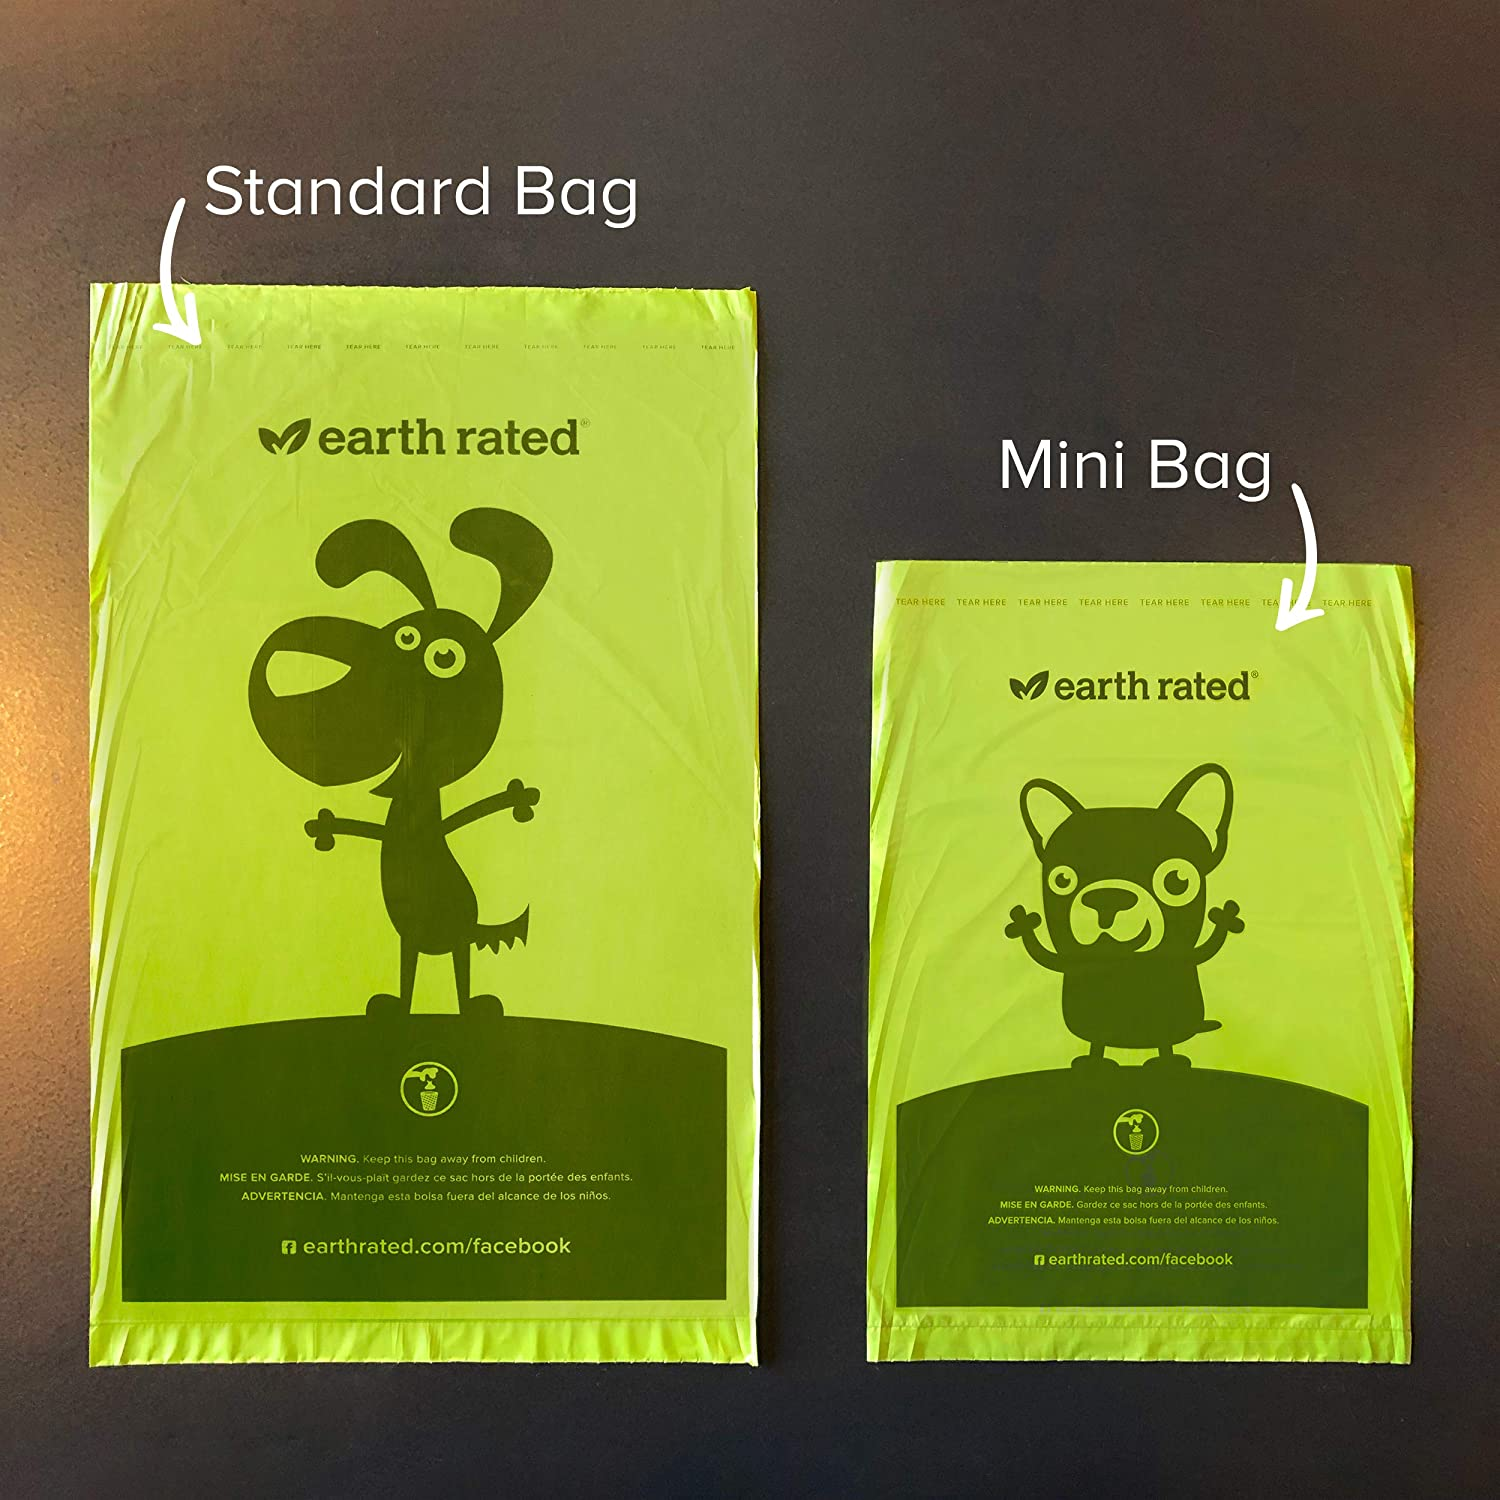 Earth Rated Mini Poop Bags, Lavender-Scented, Pet Waste Bags for Small Dogs, 300 Bags on a Single Roll, Each Dog Poop Bag Measures 6.5 x 9.5 inches